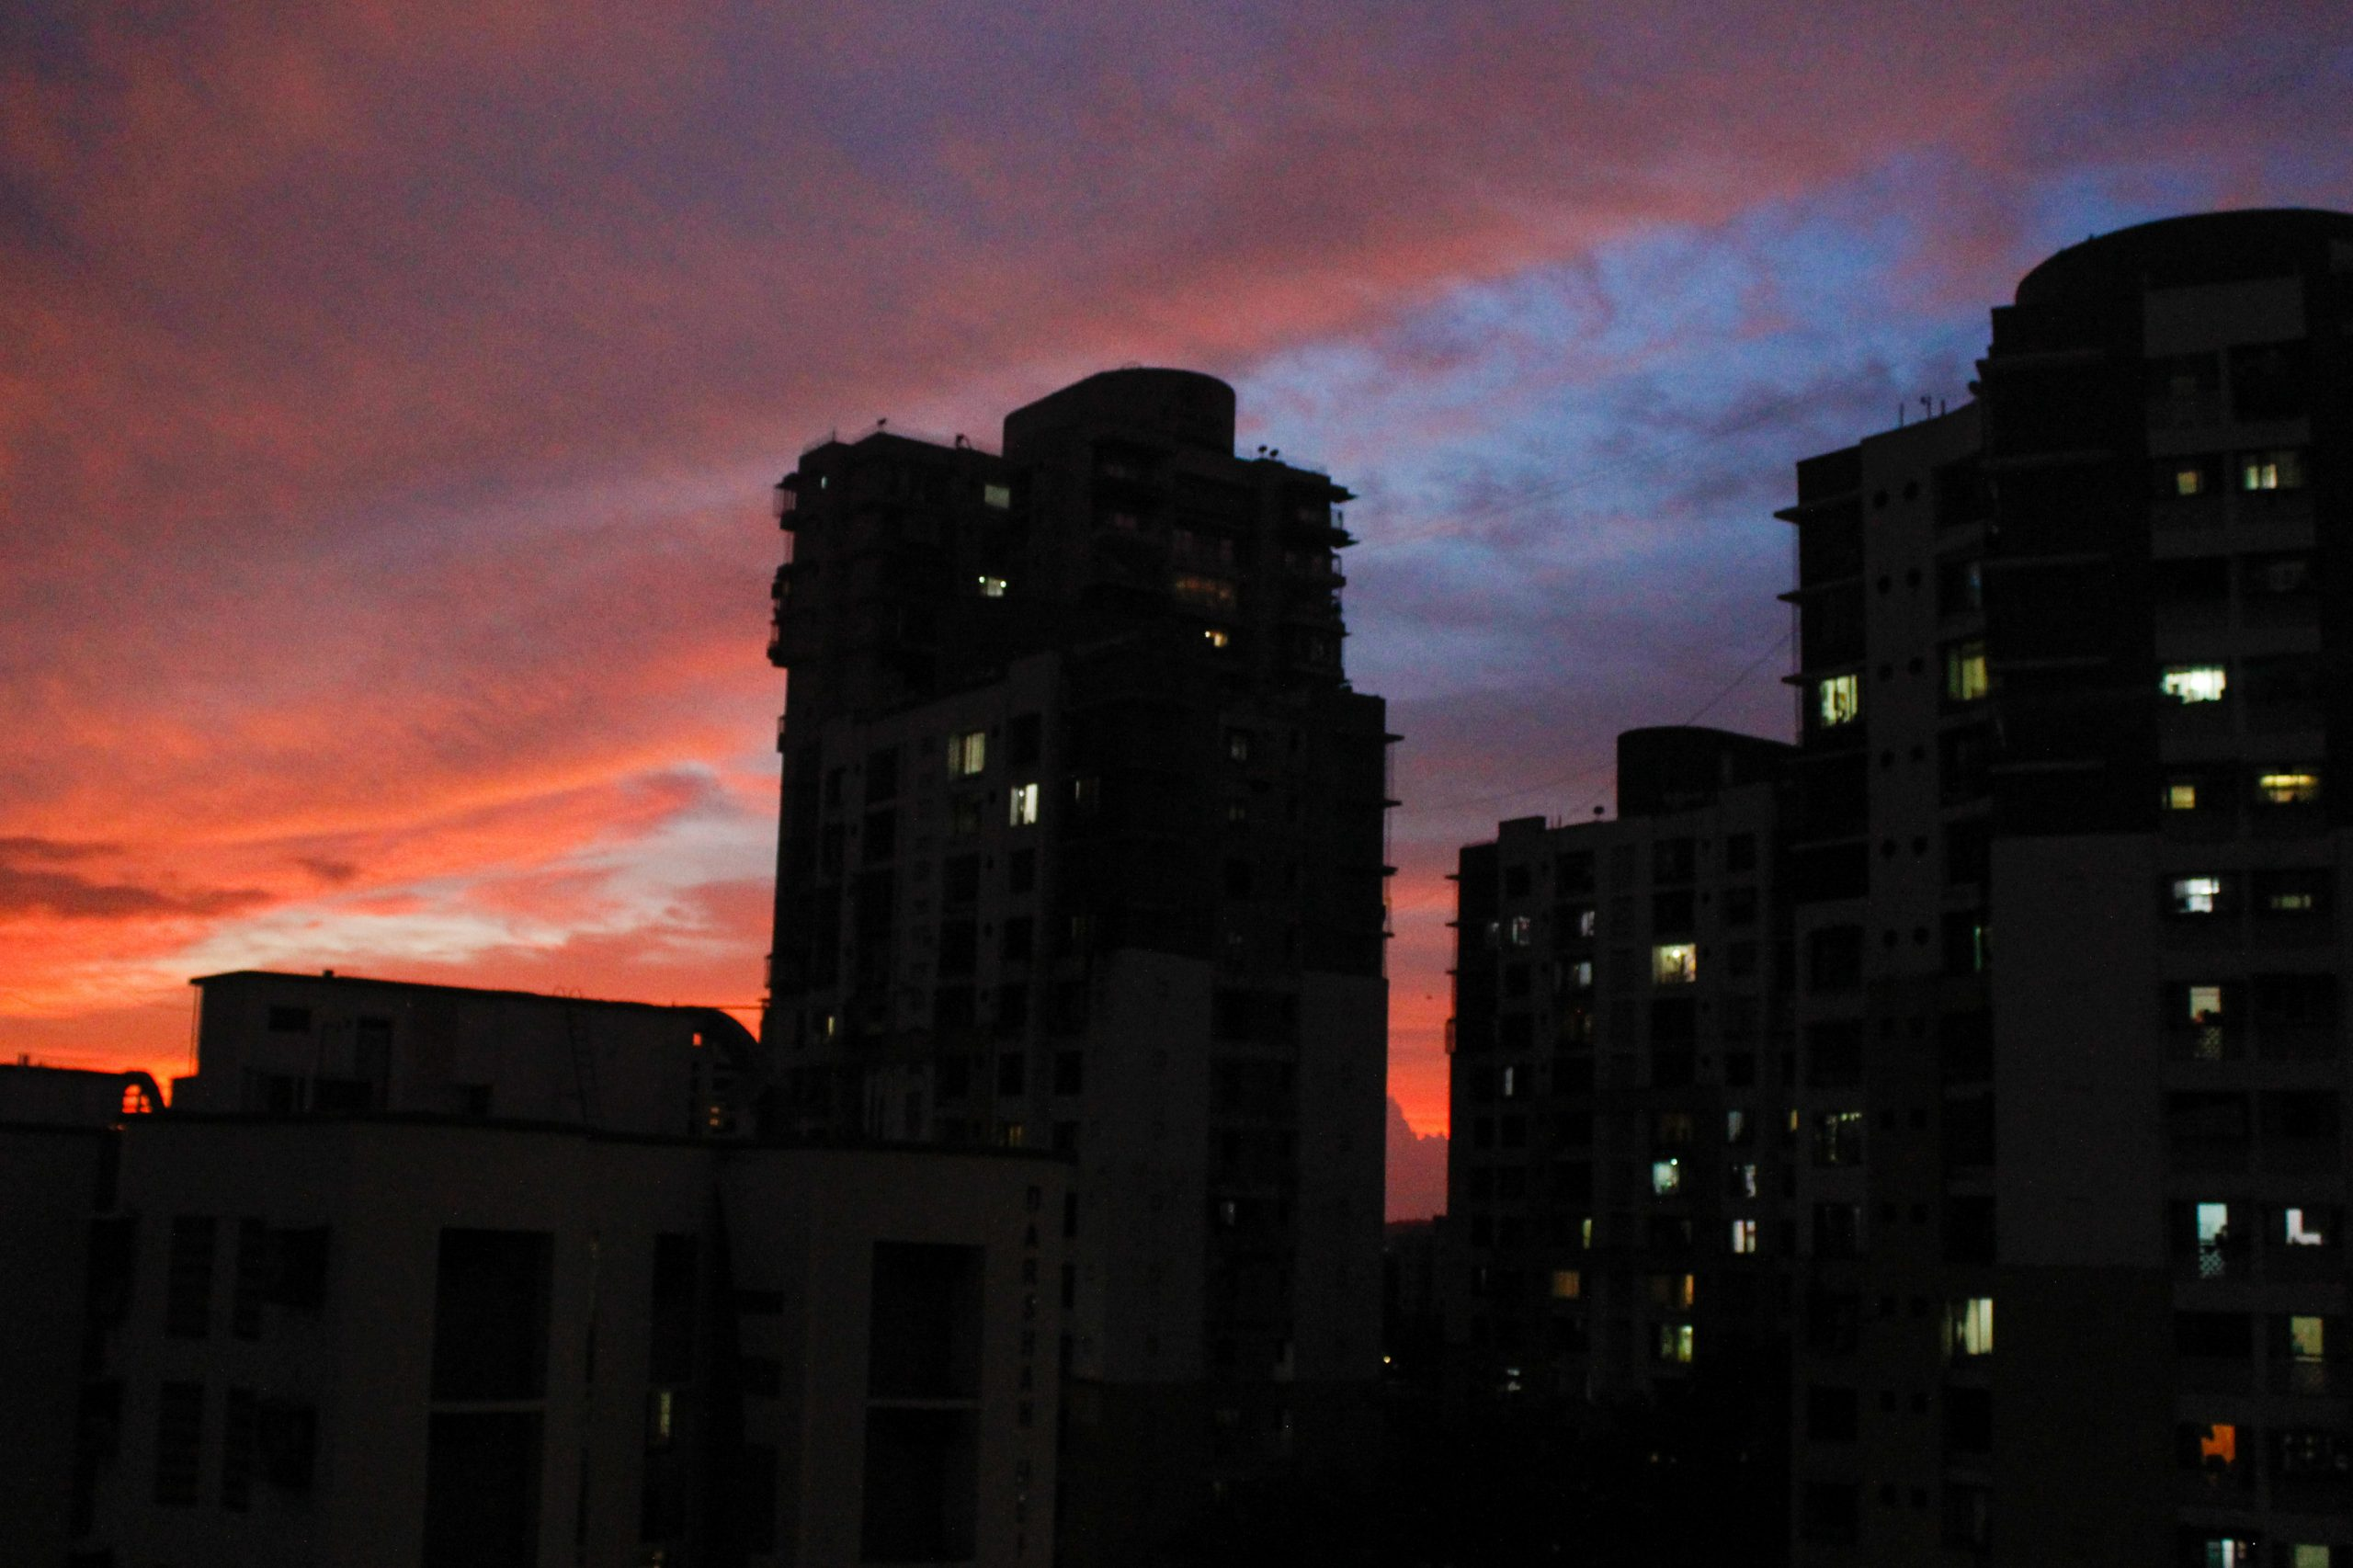 silhouette of buildings against the evening sky